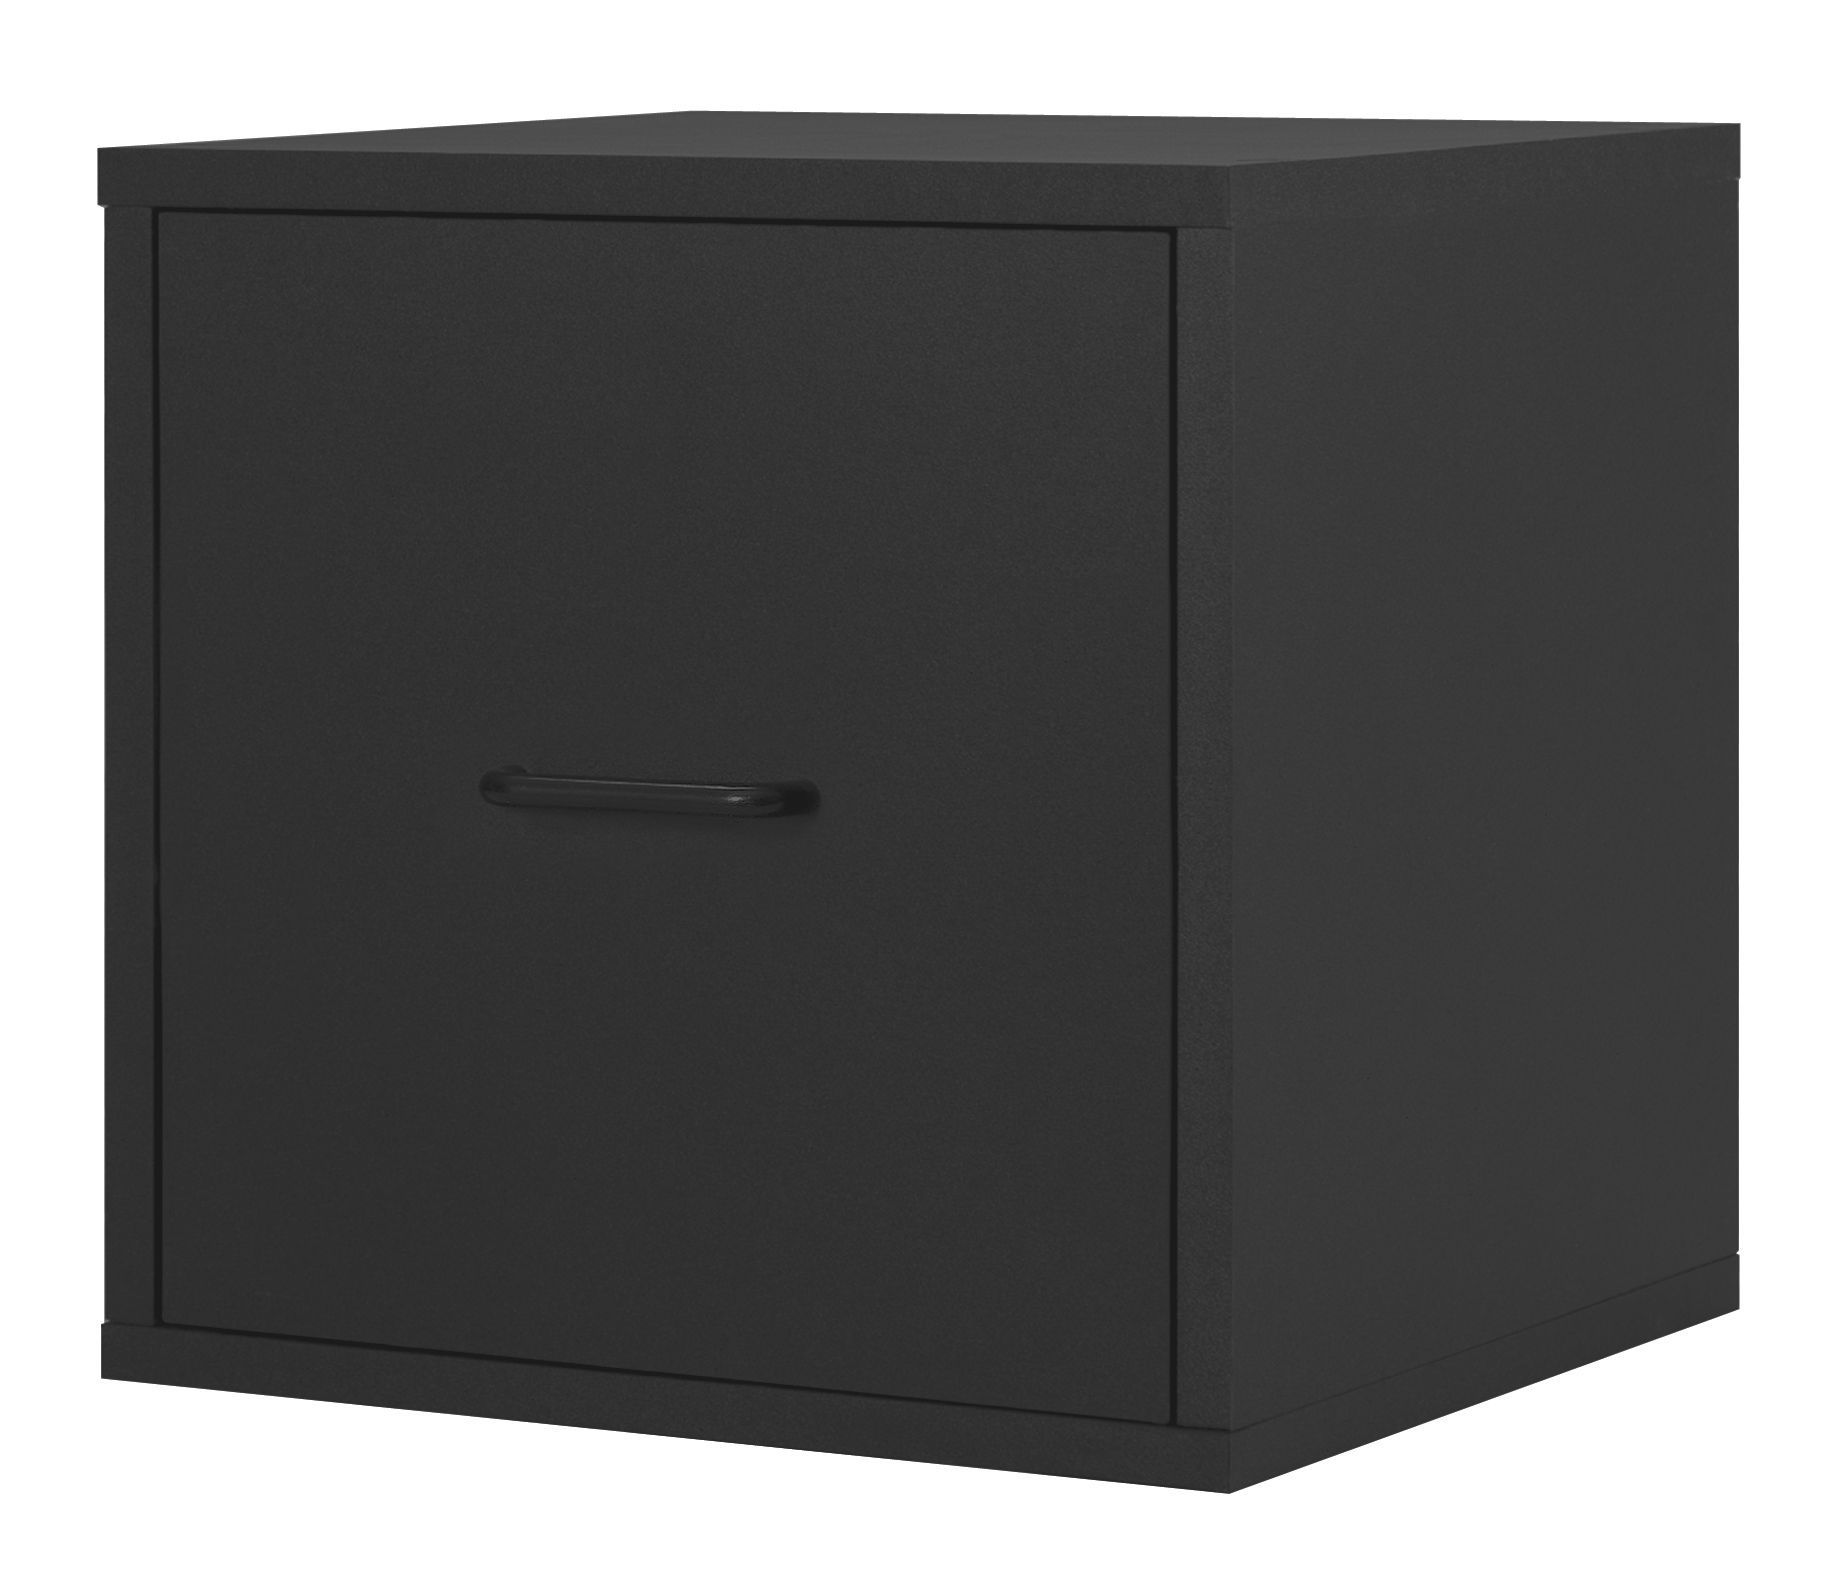 FOREMOST INTERNATIONAL TRADING File Cube Black Cube